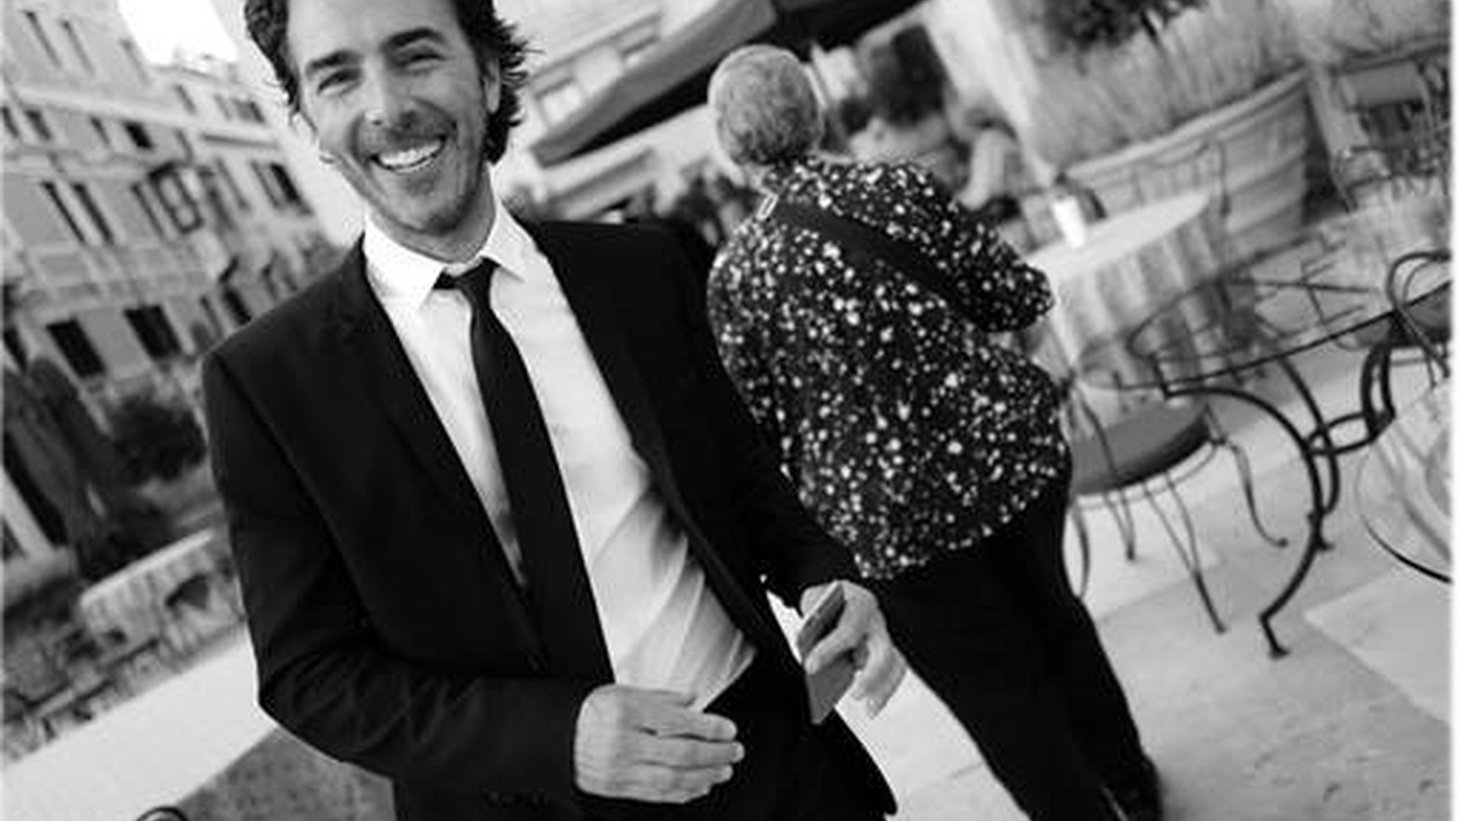 Director Shawn Levy built a career on the Night at the Museum franchise, but wanted to break out of his box. He set out to produce, and this past year scored with the Netflix mega-hit Stranger Things, now up for 18 Emmys. He tells us how he went about getting the industry to reconsider him.